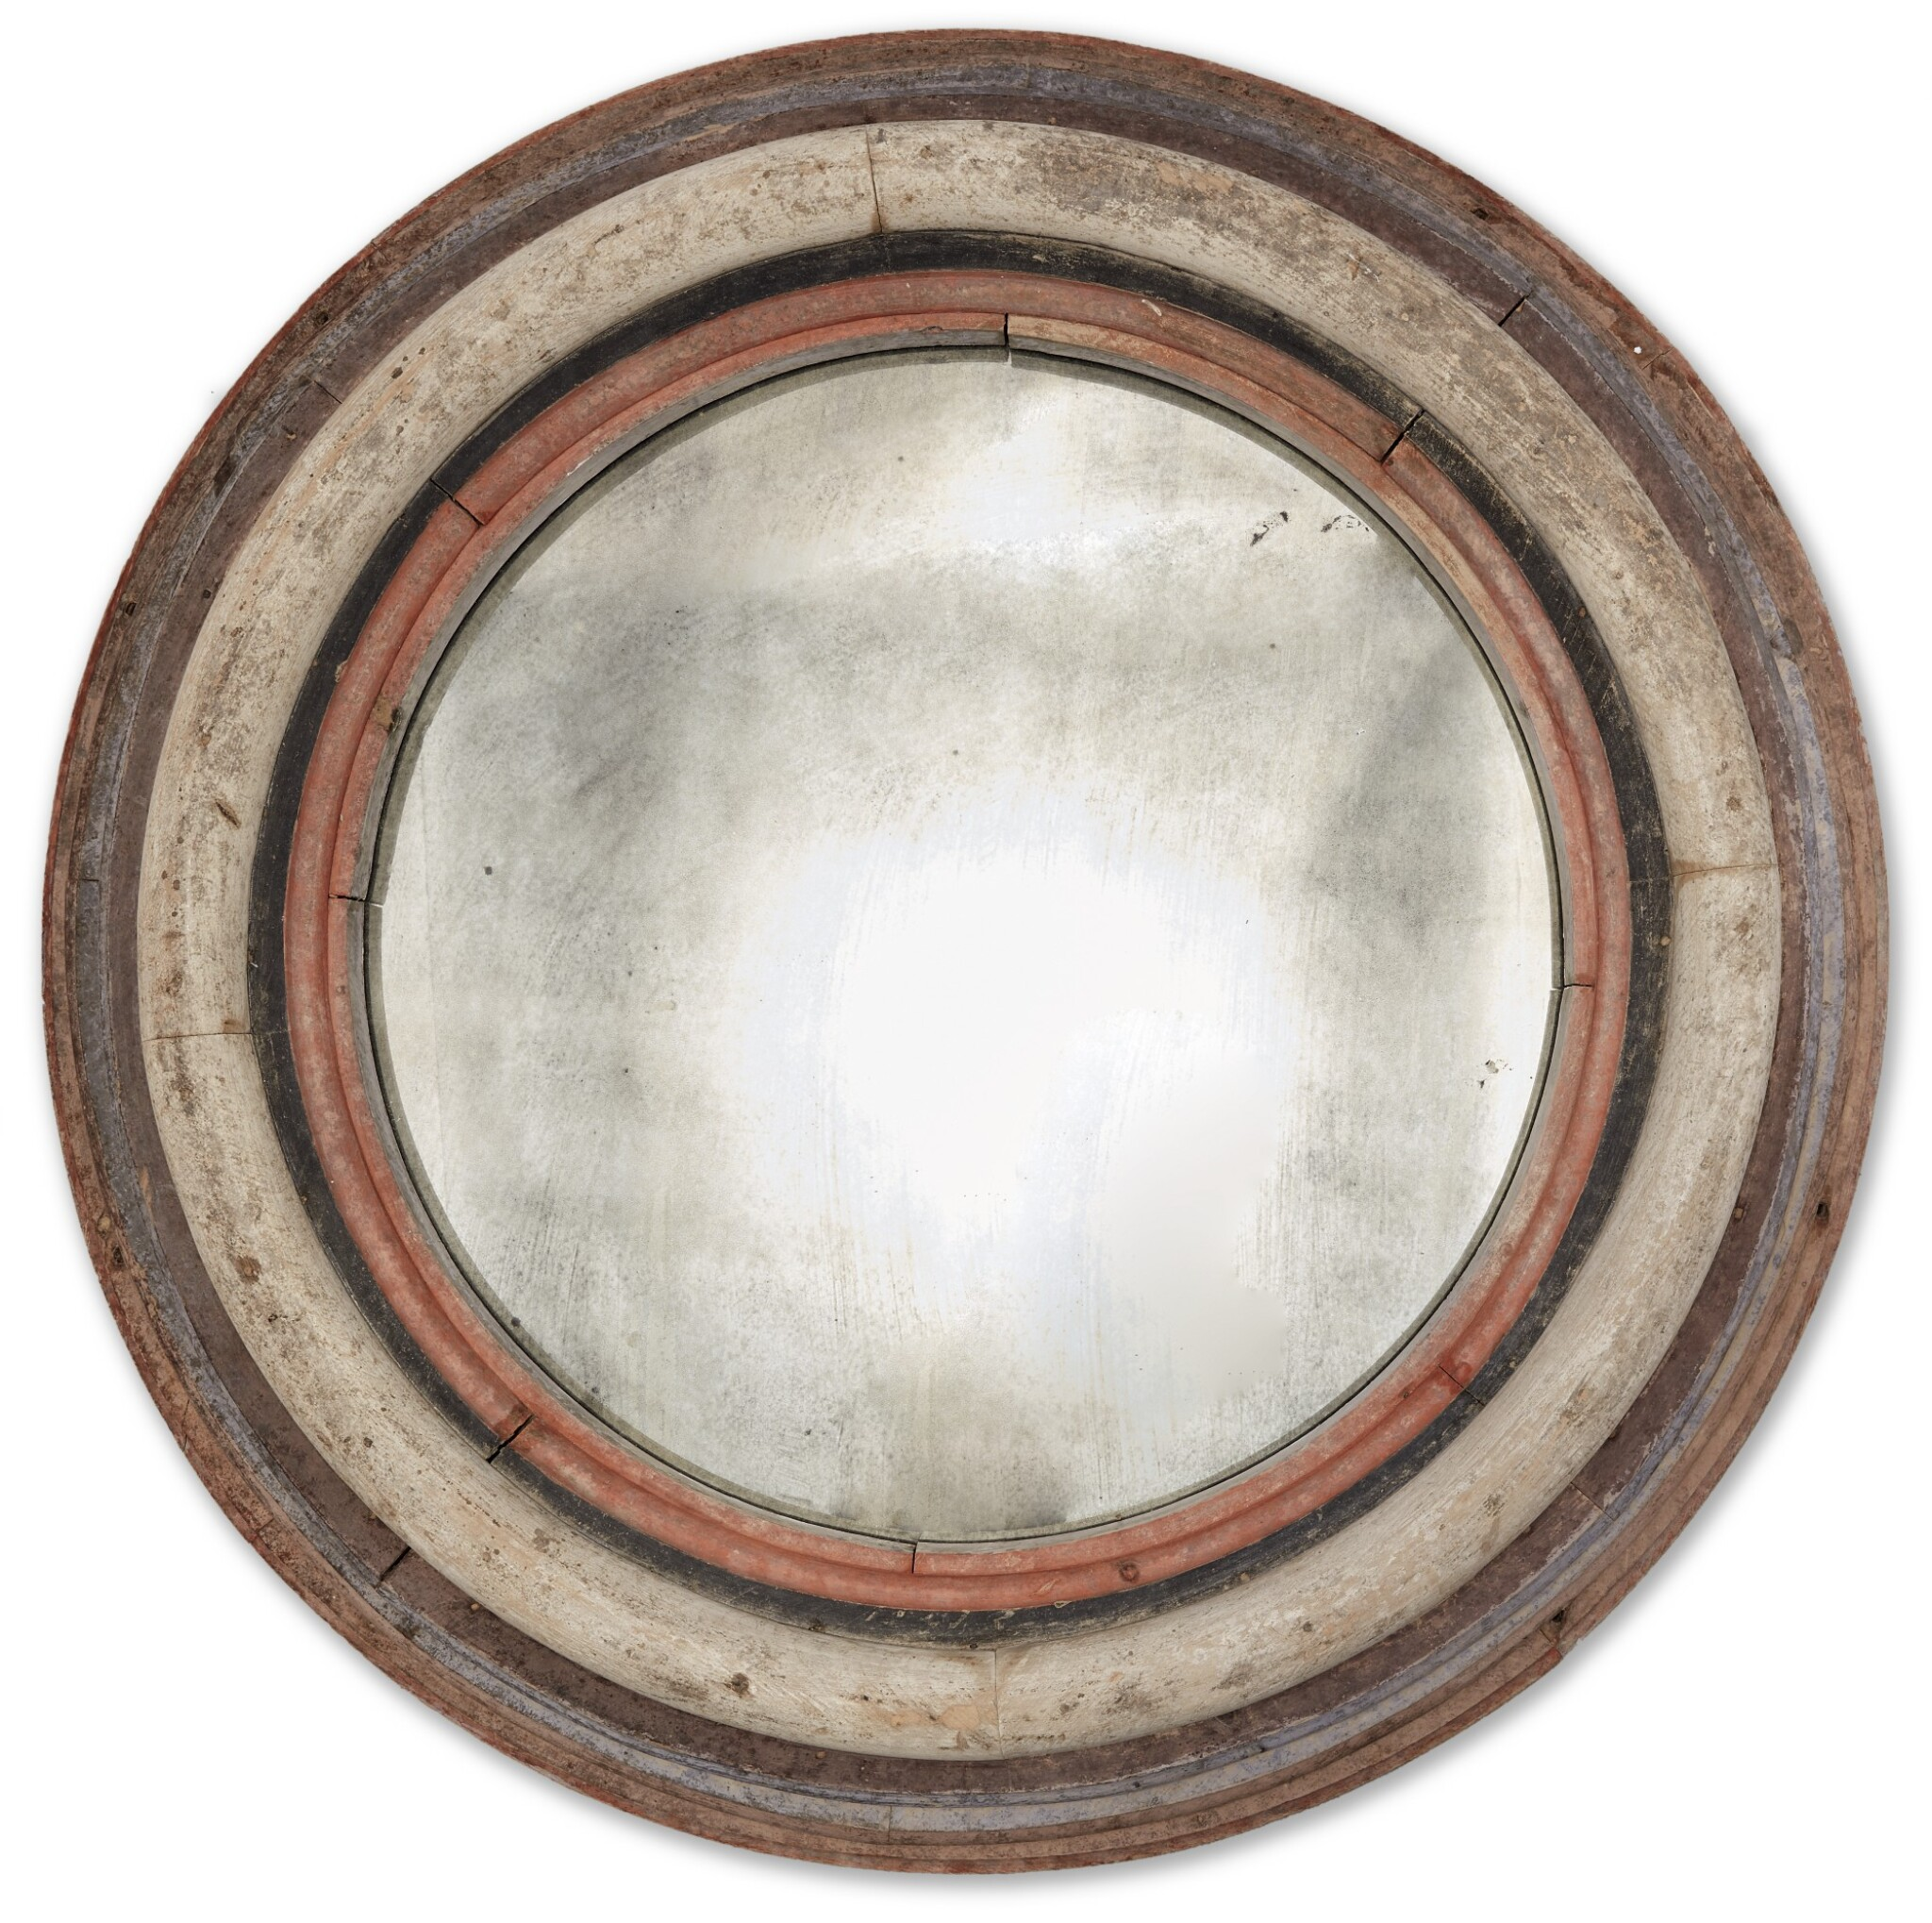 View full screen - View 1 of Lot 1480. AMERICAN POLYCHROME-PAINTED PINE MIRROR, CIRCA 1940.